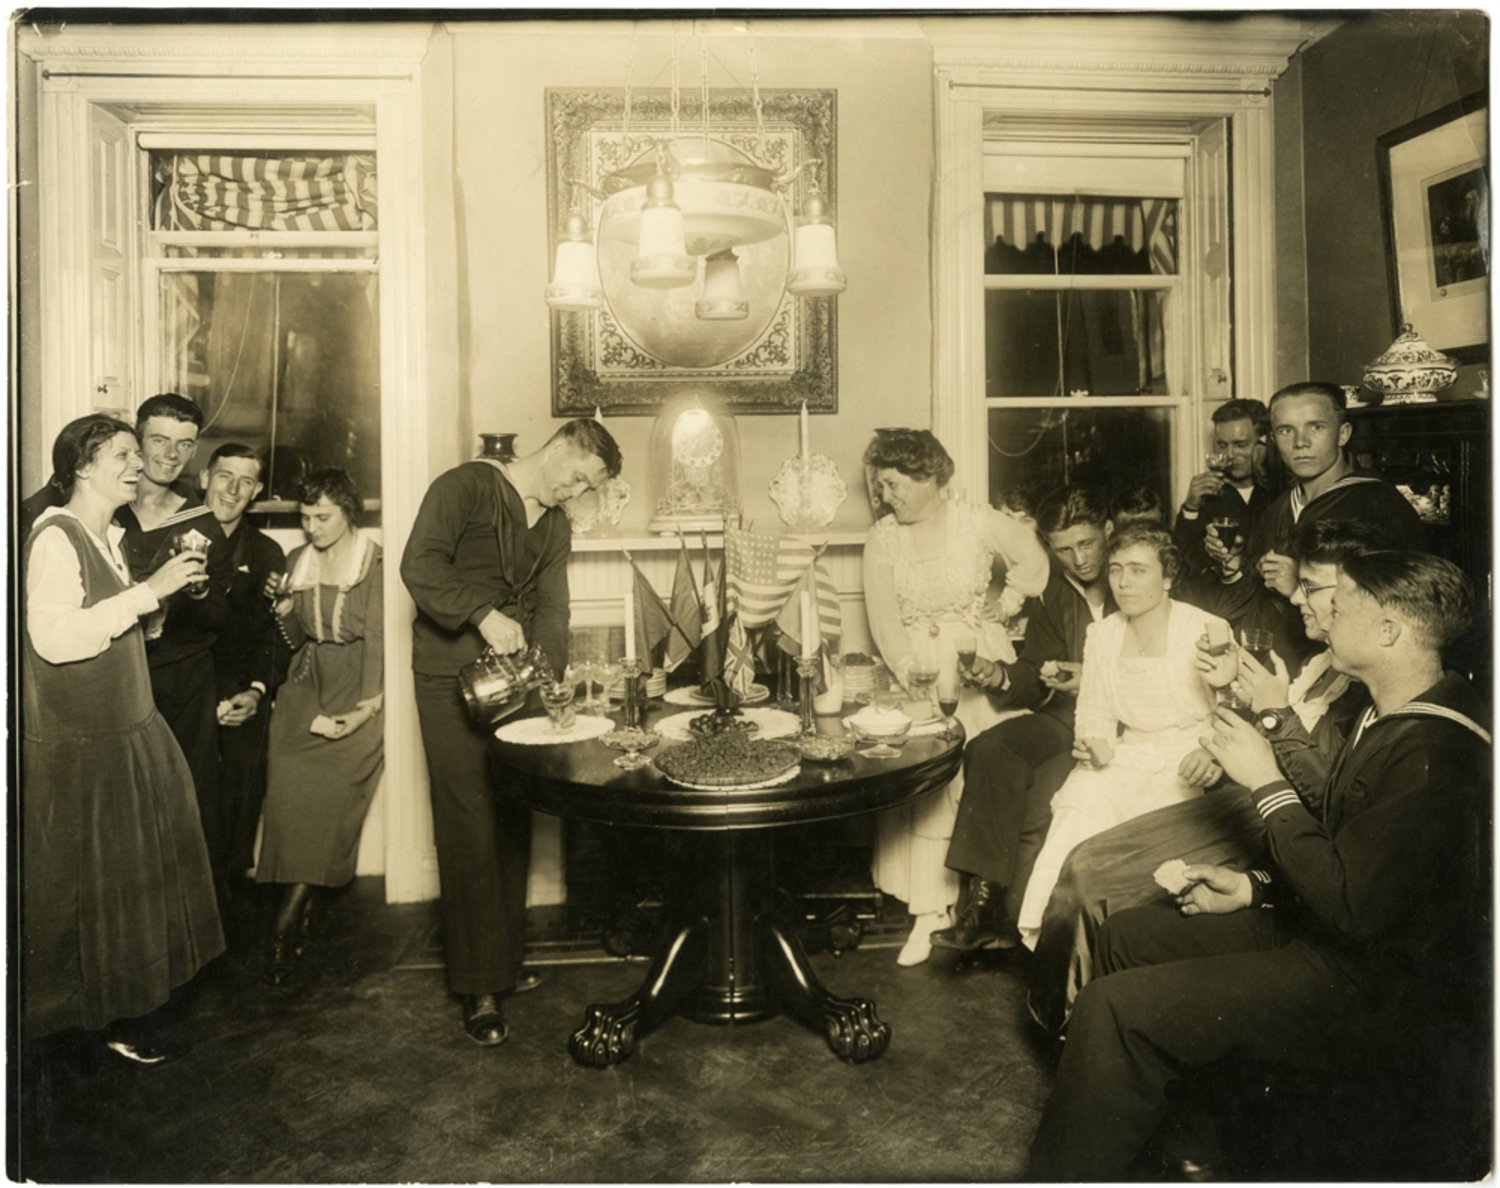 Alice Foote MacDougal entertaining a group of sailors in her small apartment, circa 1917-1918; photograph by Jessie Tarbox Beals.